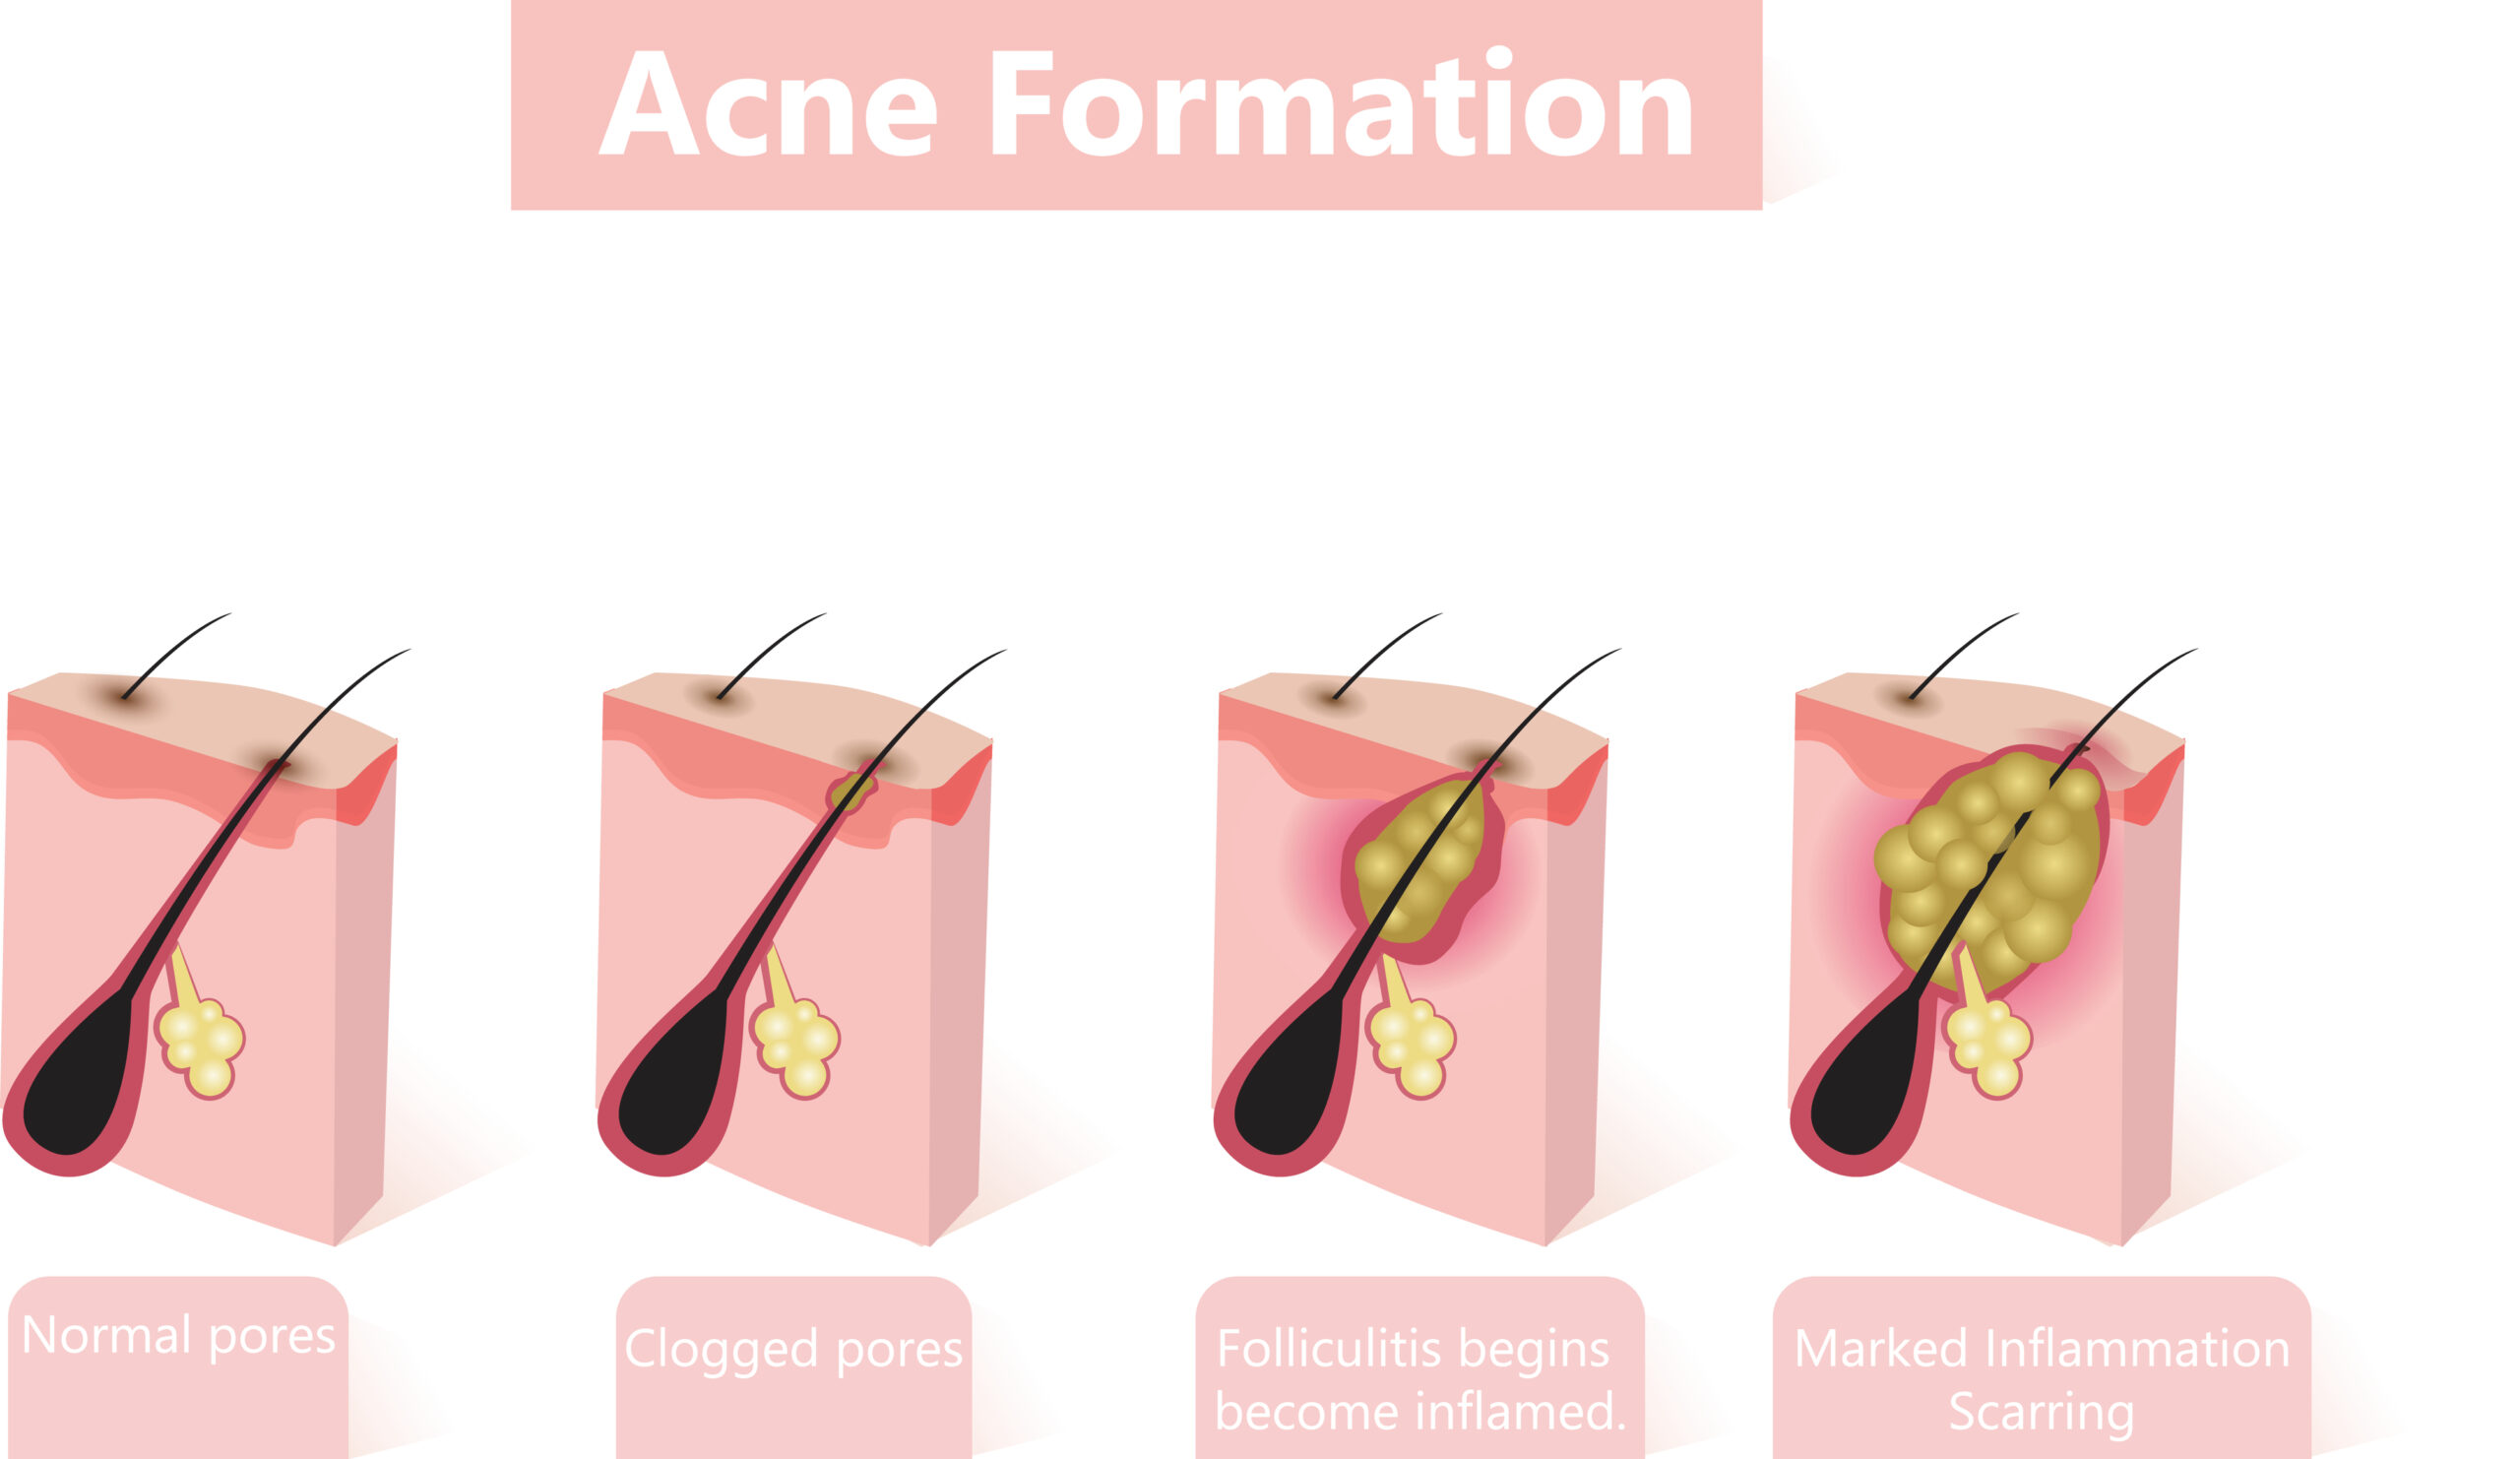 Stages of acne formation